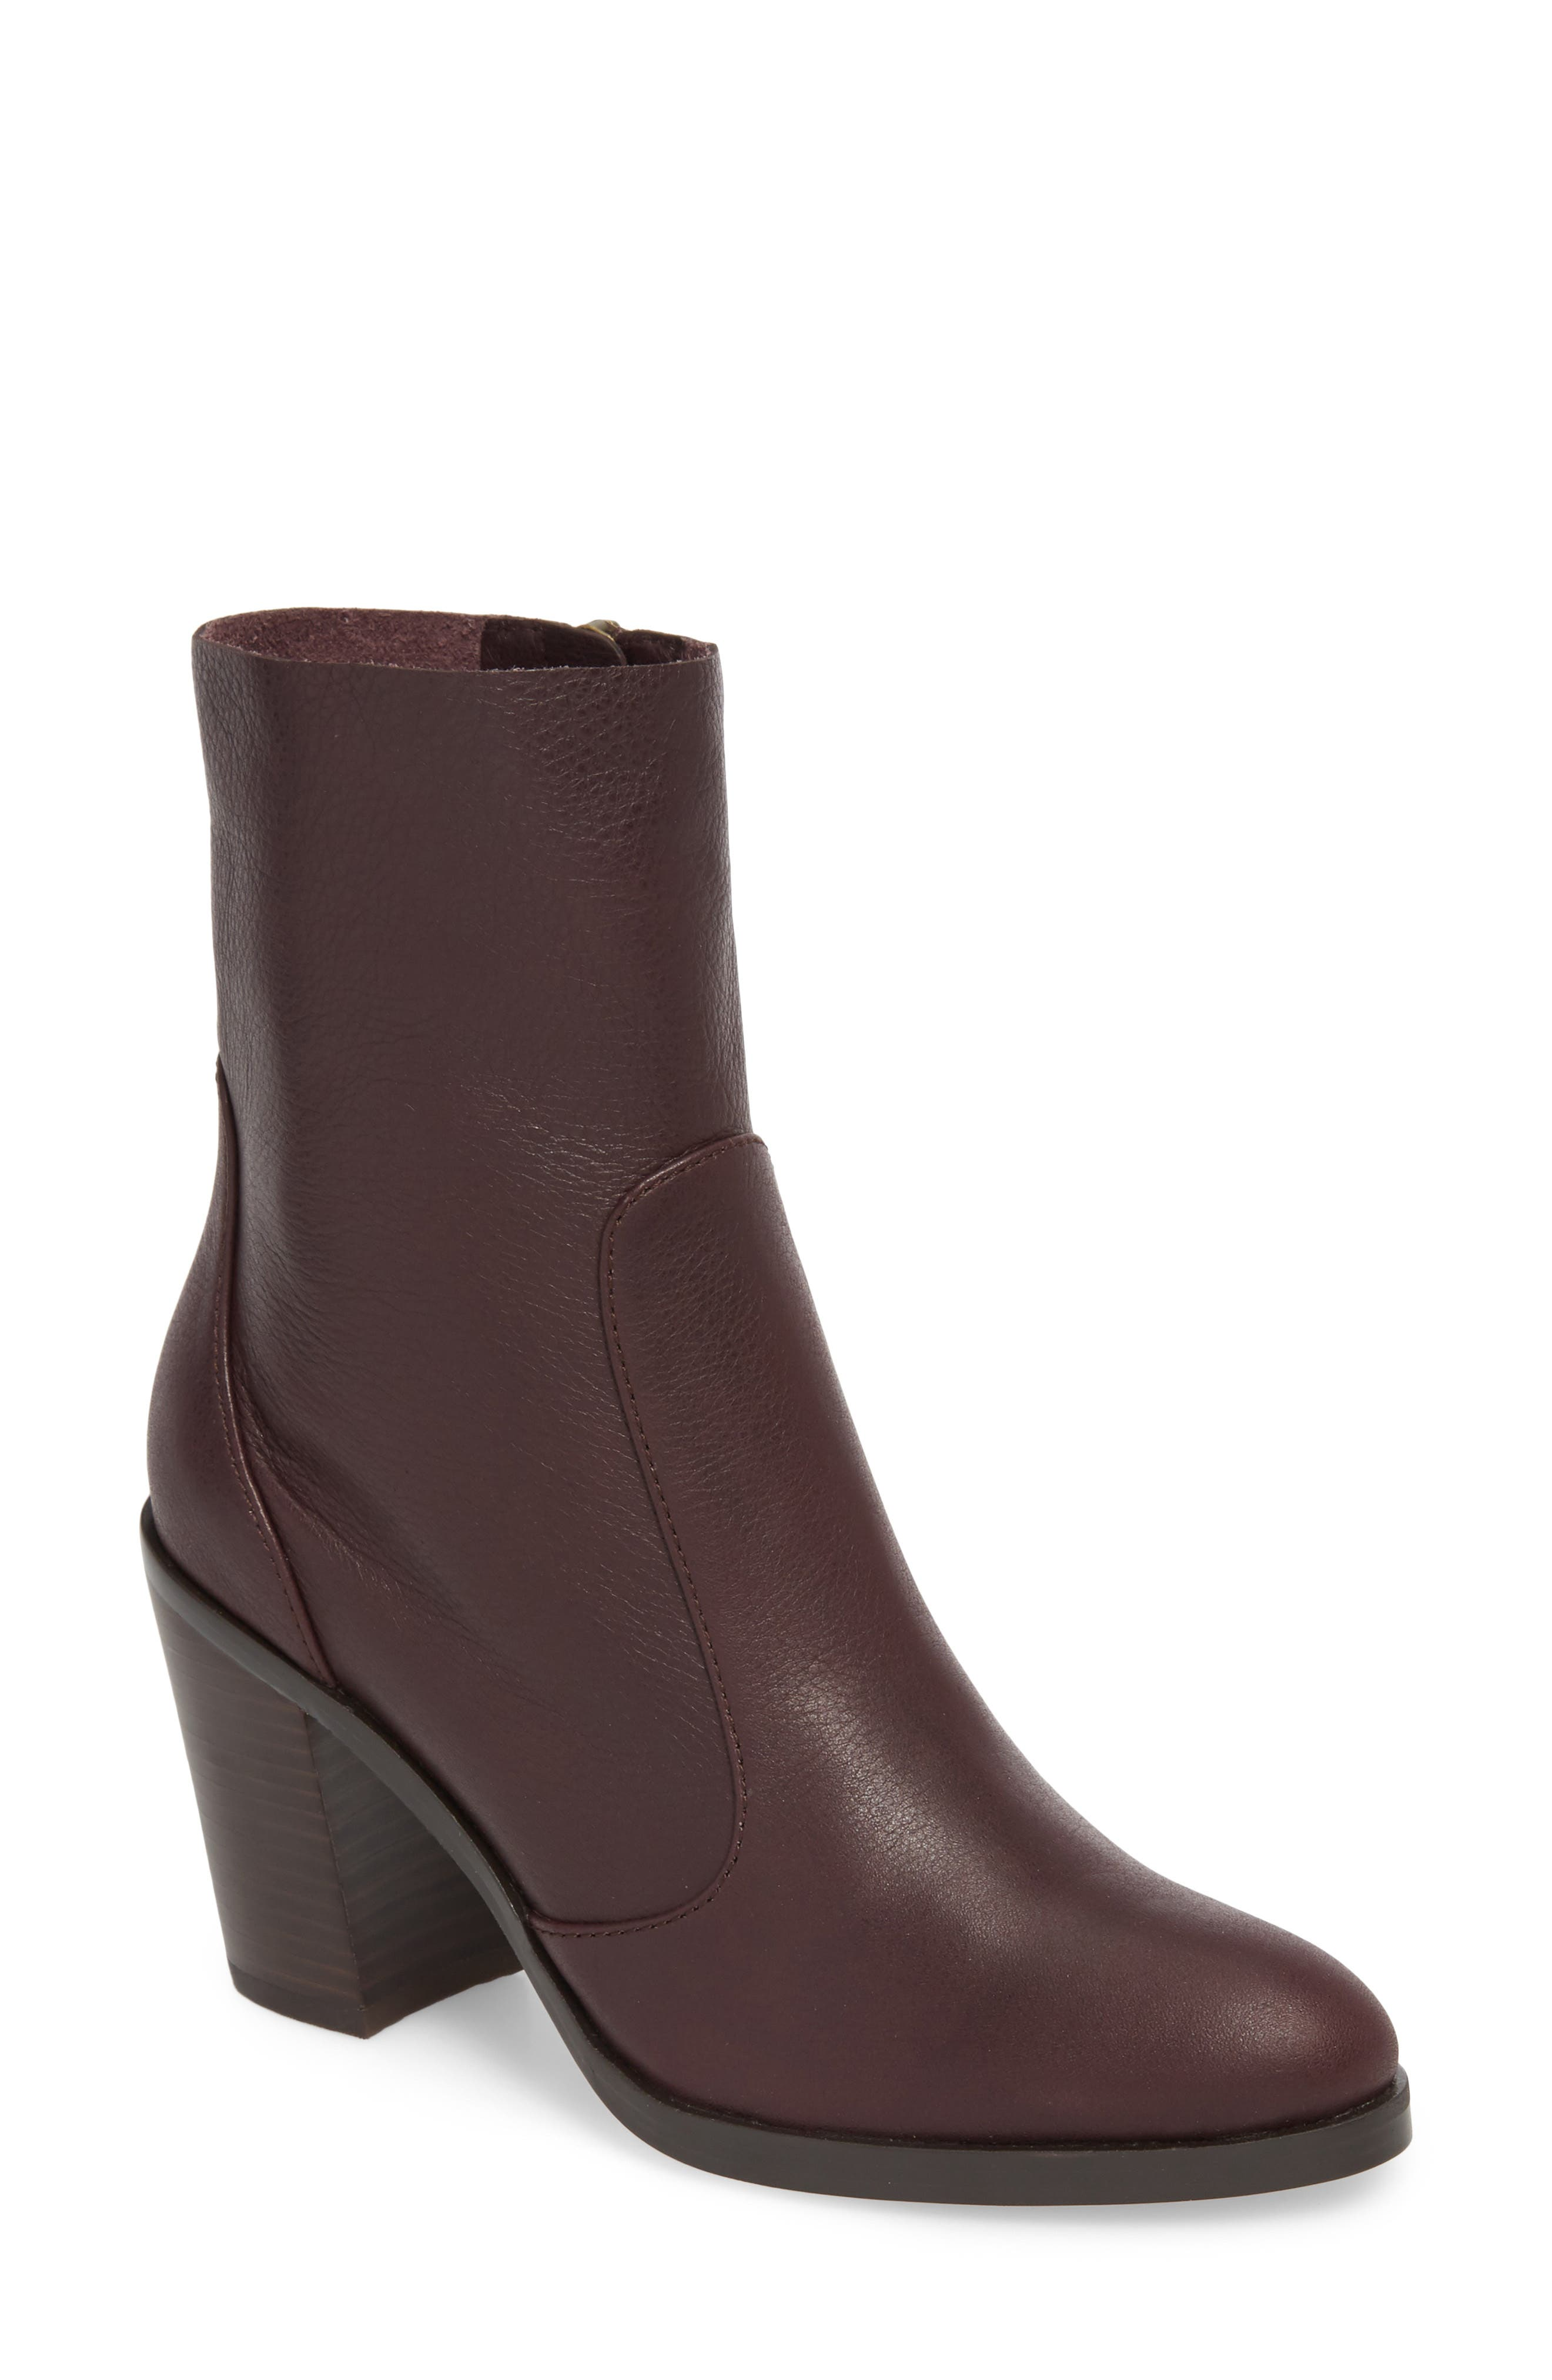 Roselyn Bootie,                             Main thumbnail 1, color,                             DEEP PLUM LEATHER